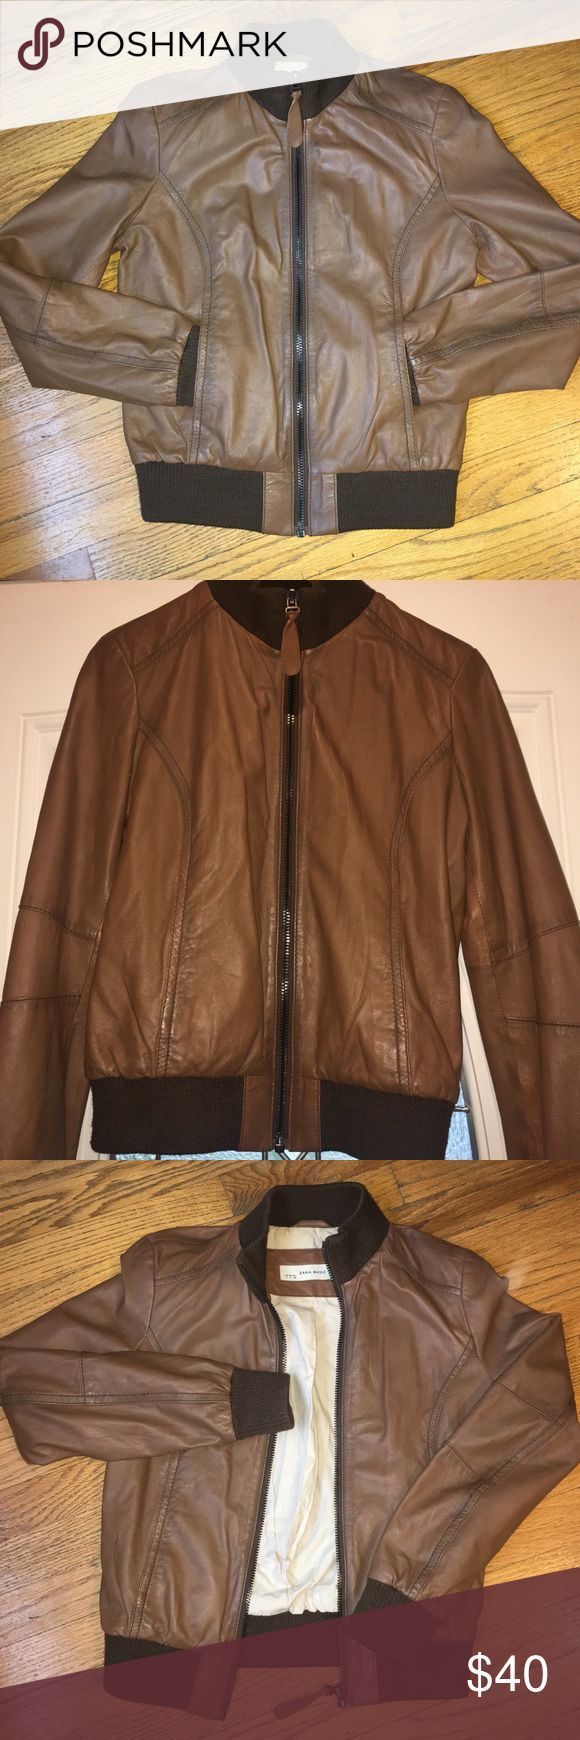 Zara Brown Bomber Jacket - Sz Medium GUC this jacket has no visible flaws only normal pre-owned wear. The lining is clean and in really good shape. These is a small amount of piling around the bottom of the jacket and the insides of the sleeve. I'm not a leather expert but I believe that this jacket is faux leather but I'm not certain. Please consider before purchasing item. Zara Jackets & Coats